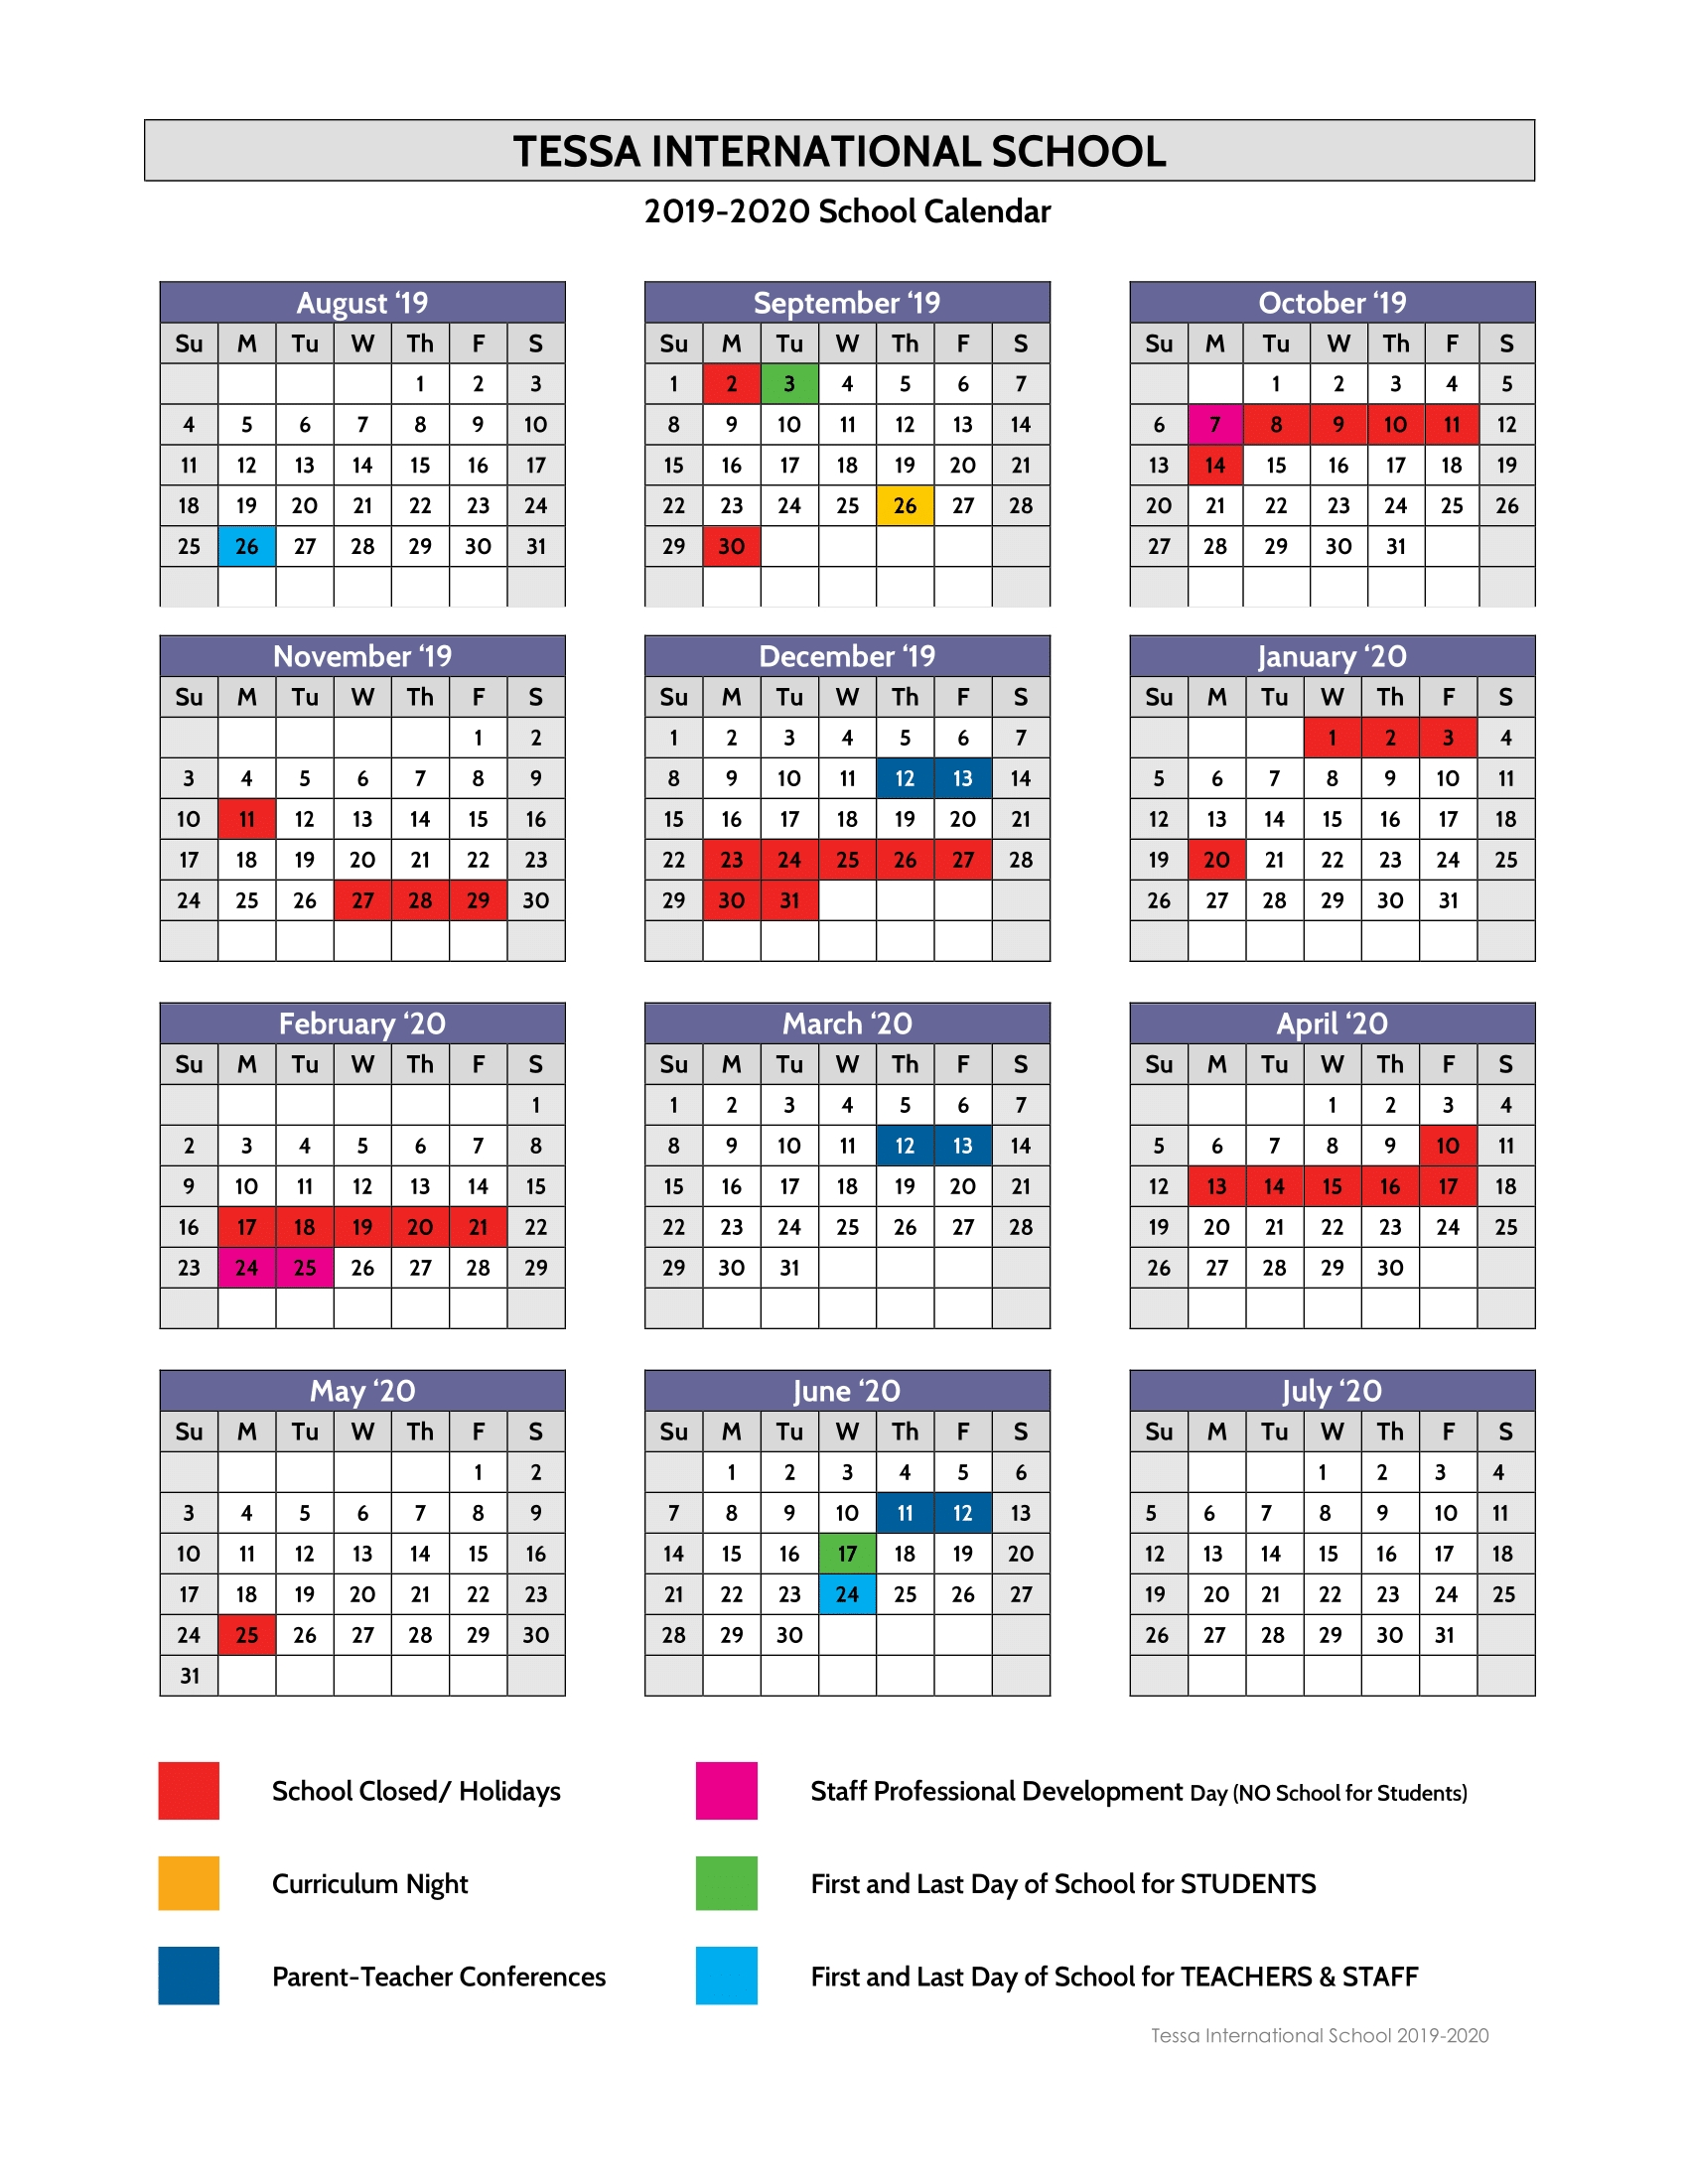 Calendar 2019-2020 - Tessa International School_Calendar School Nyc 2020